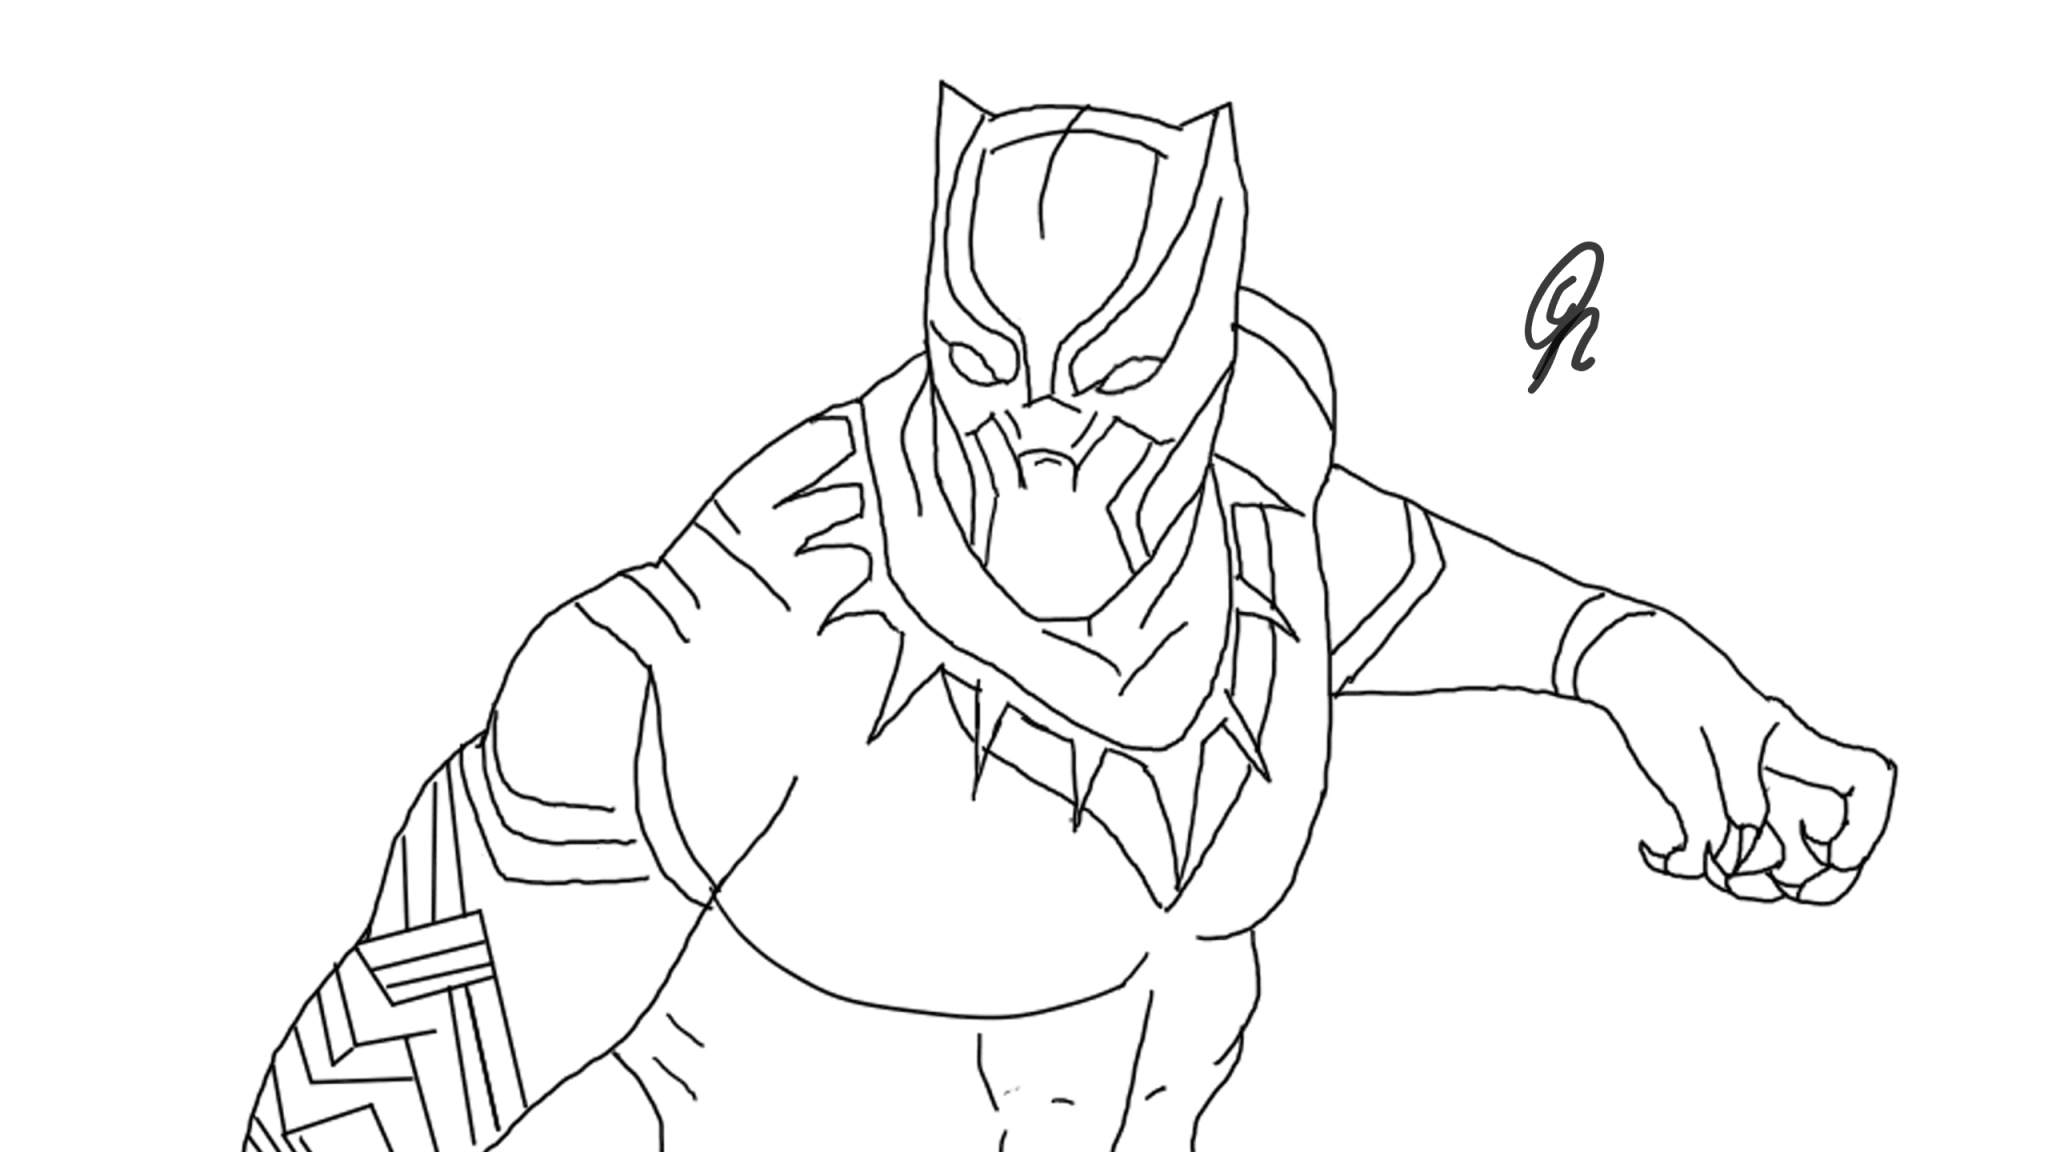 Black Panther By GS-Drawings On Newgrounds